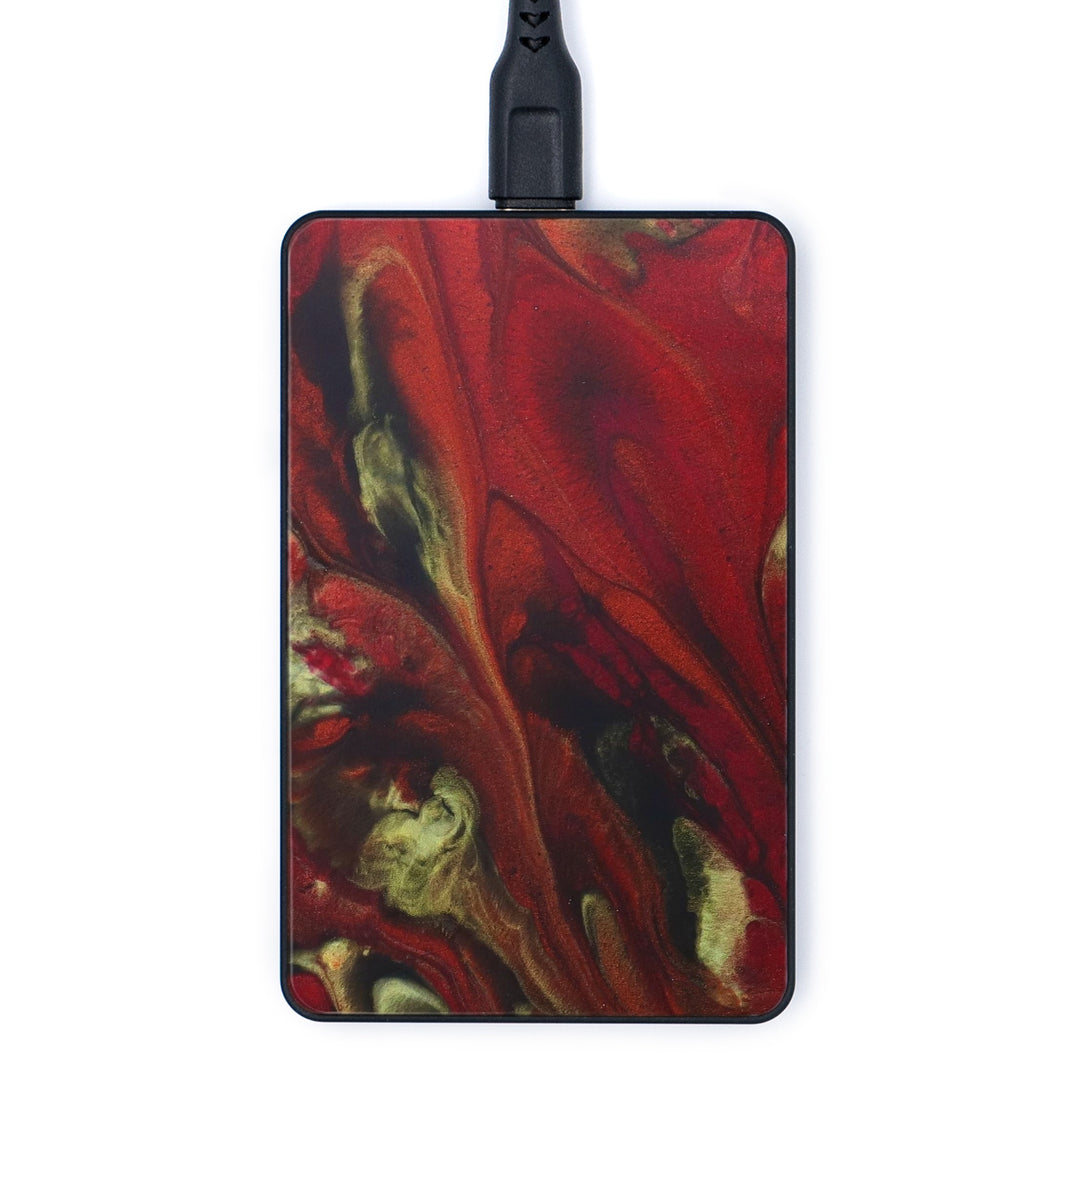 Thin Wireless Charger - Kissiah (Dark Red, 345583)